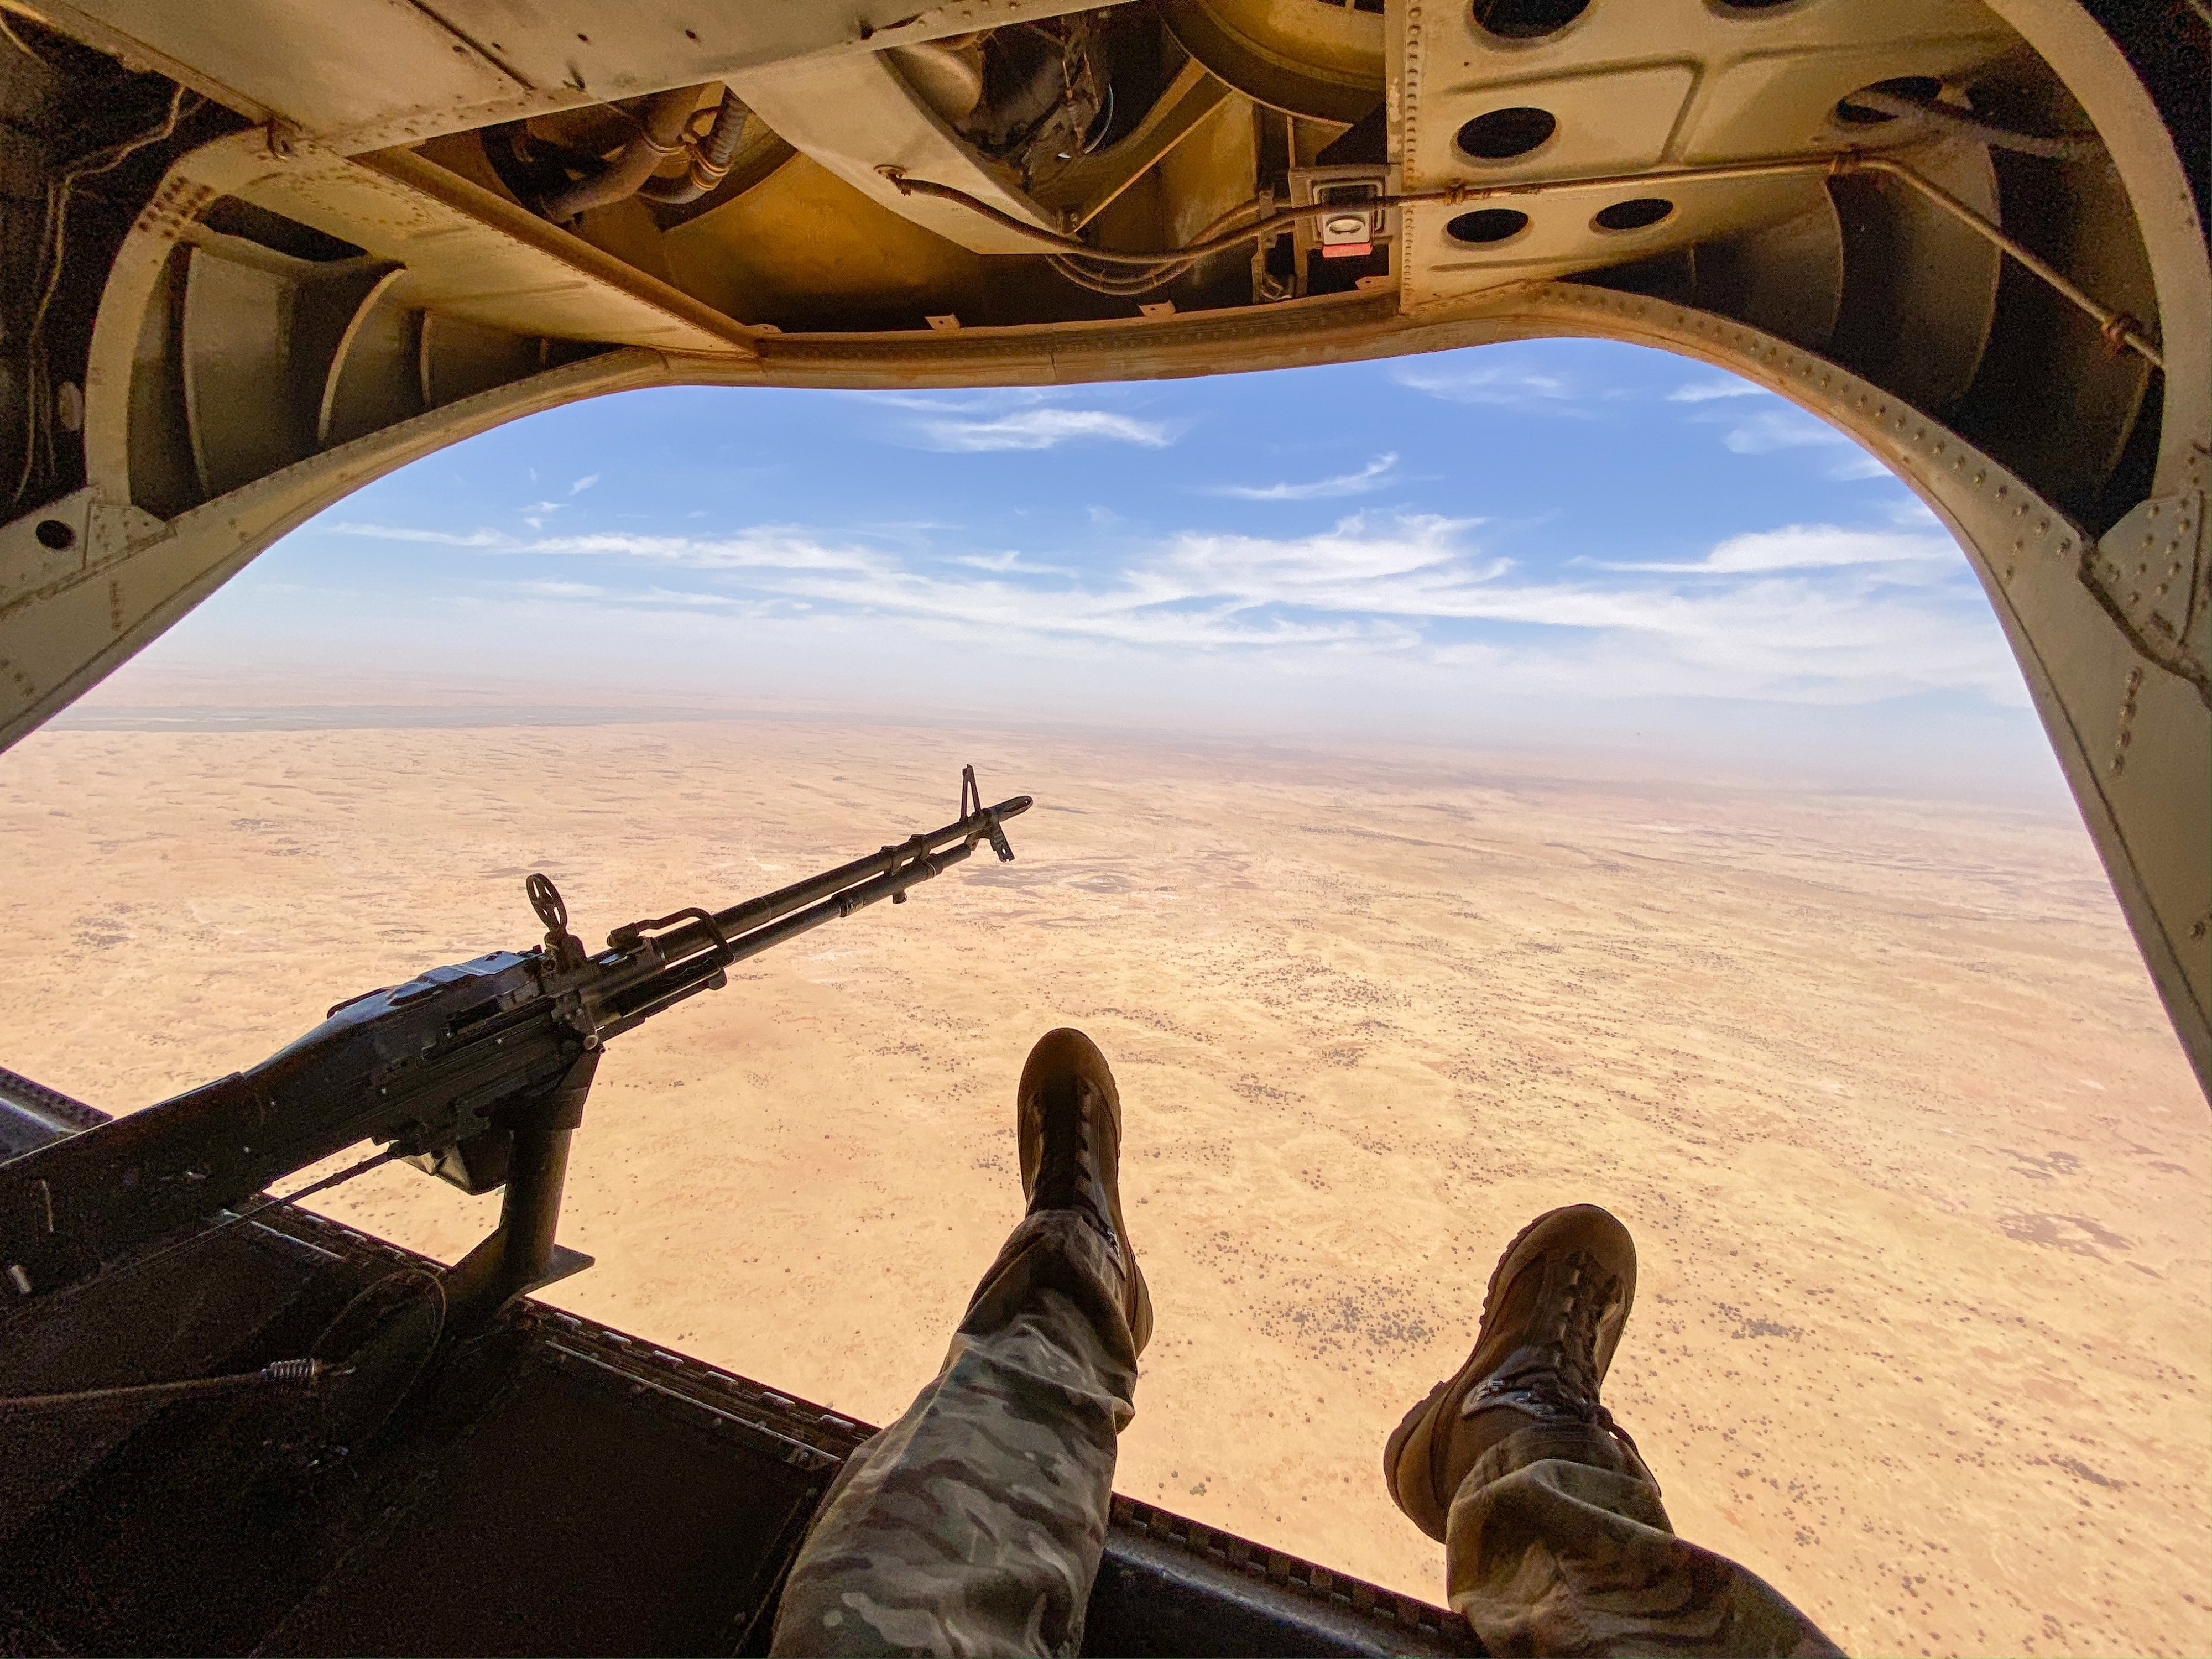 An image of a Chinook helicopter flying over the desert.